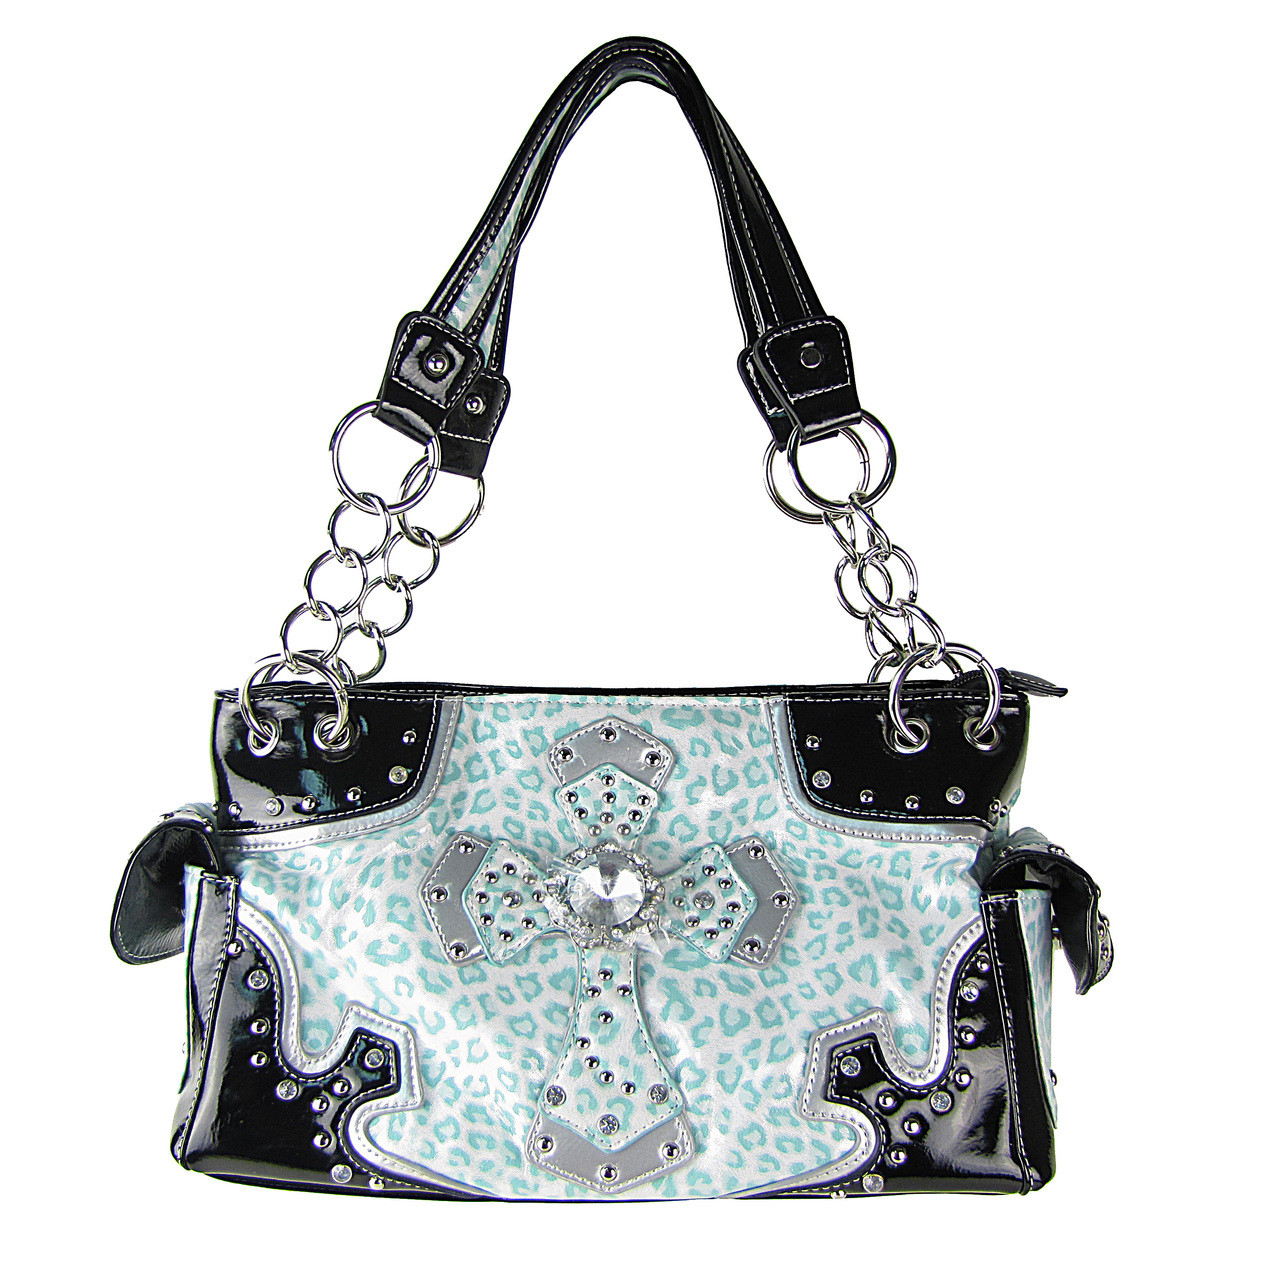 TURQUOISE LEAPORD STUDDED RHINESTONE CROSS LOOK SHOULDER HANDBAG HB1-69CCRTRQ